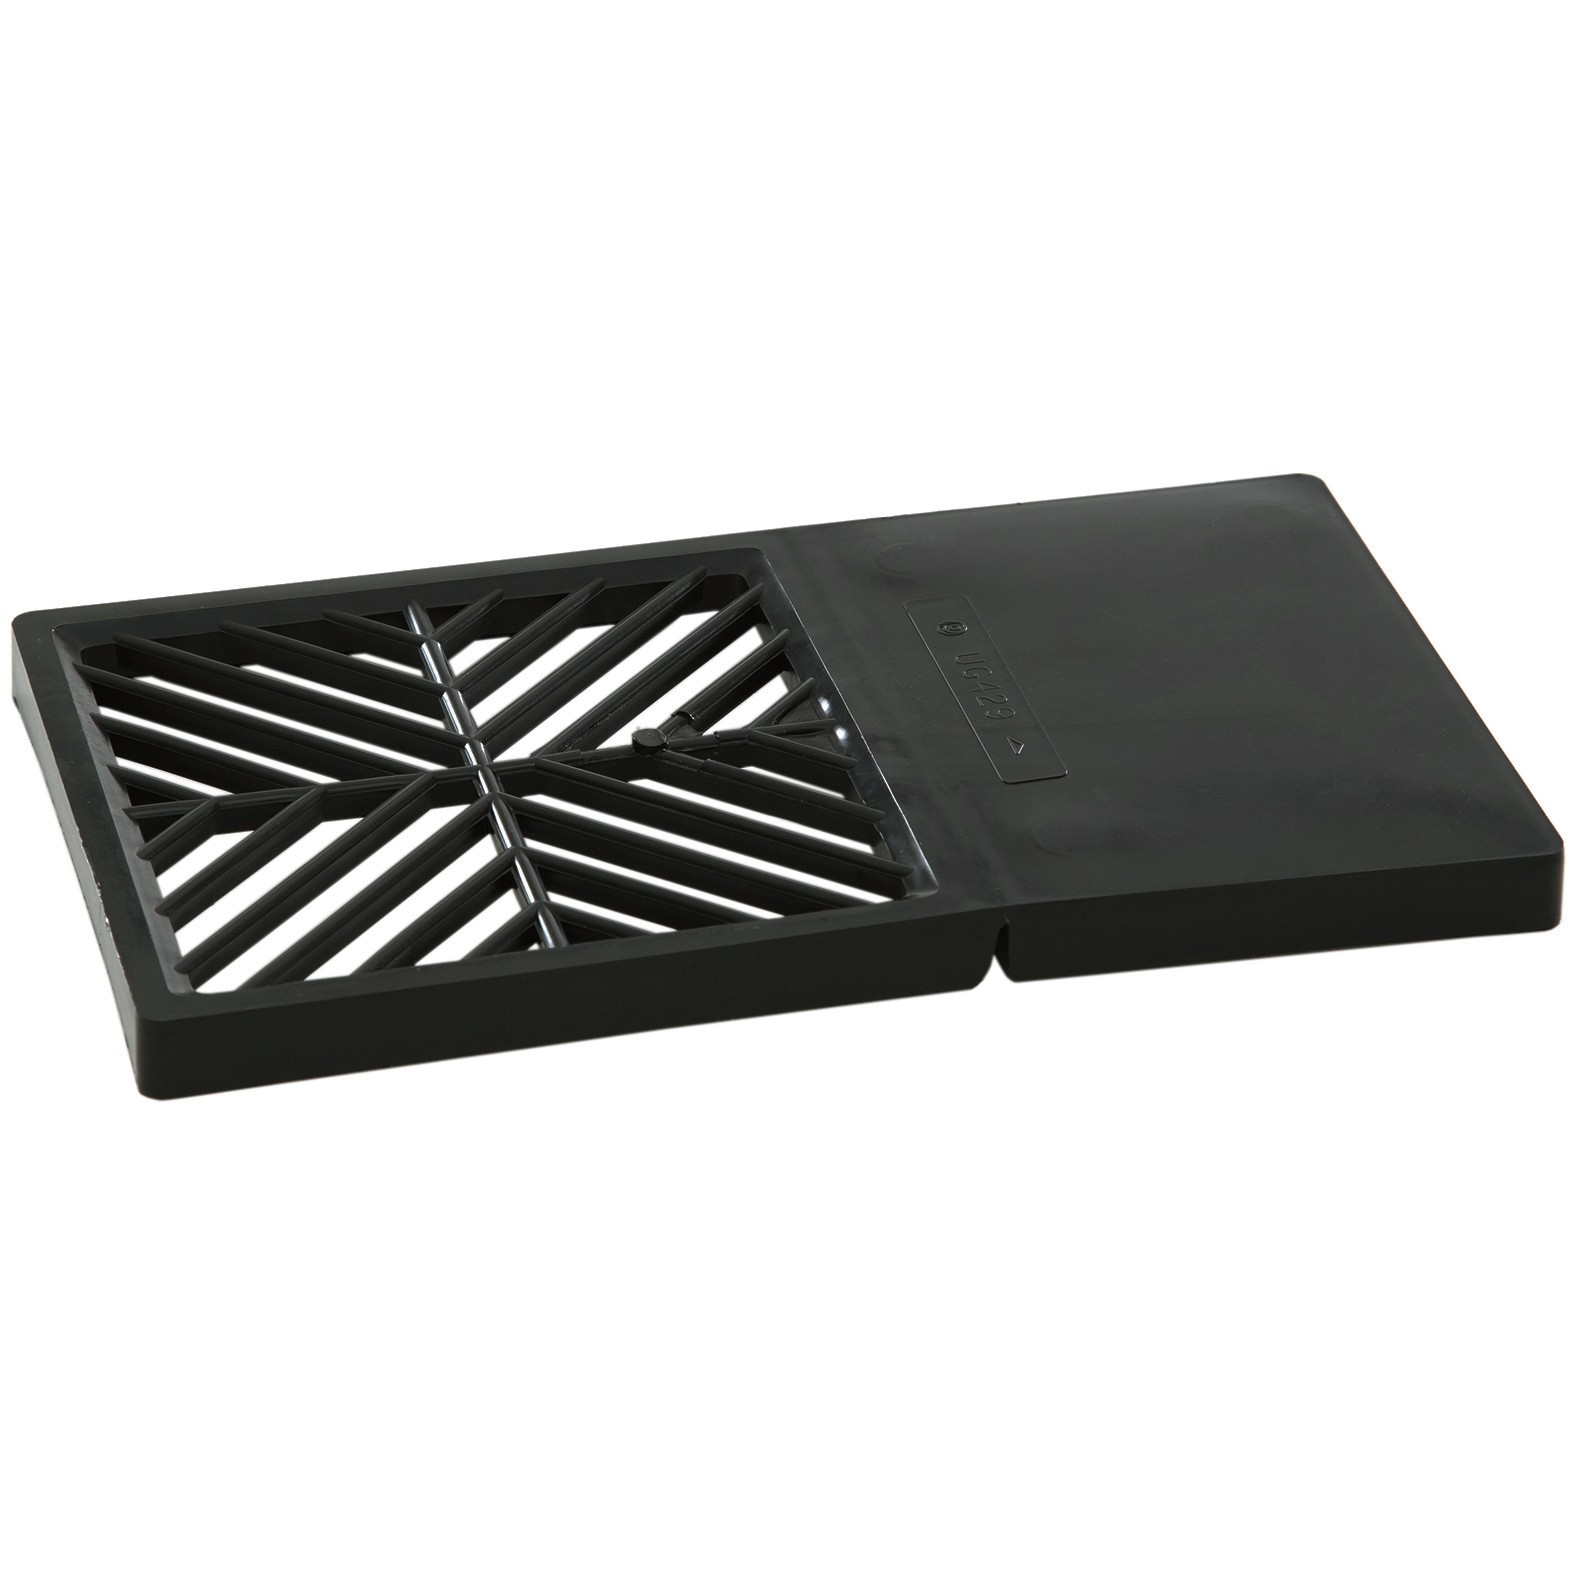 Polypipe 250mm x 150mm Rectangular Plastic Grid for Gully - Black